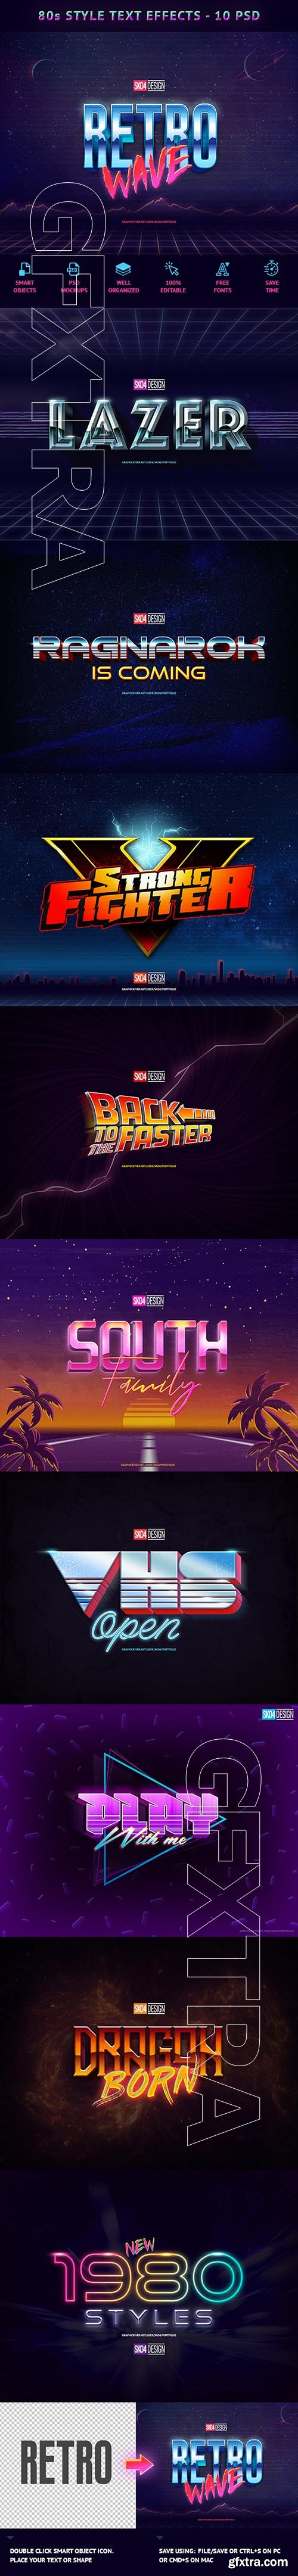 GraphicRiver - 80s Text Effects - 10 PSD 21905525